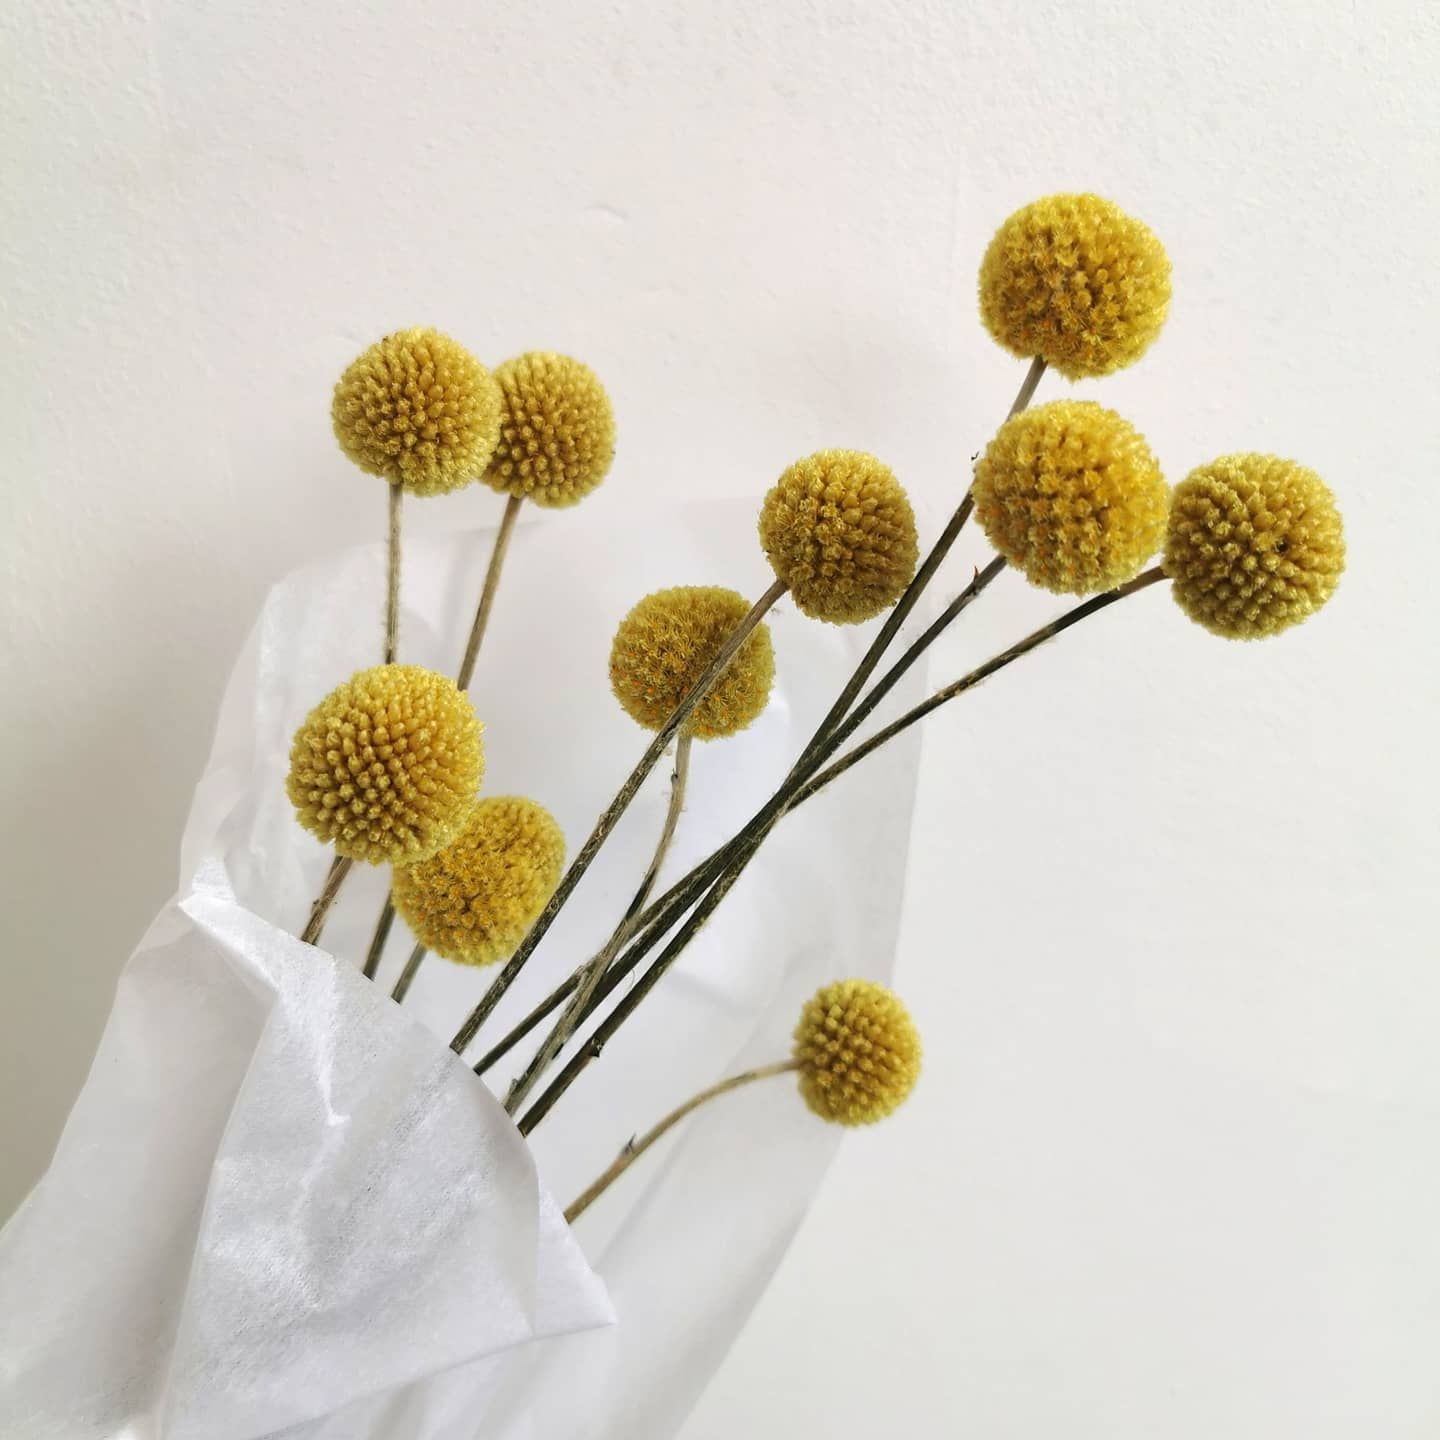 Craspedia Aka Billy Buttons These Everlasting Dried Flowers Look Amazing On Their Own Or Combined With A Dried Grass In A Vase We Have Had A Super Busy Wee In 2020